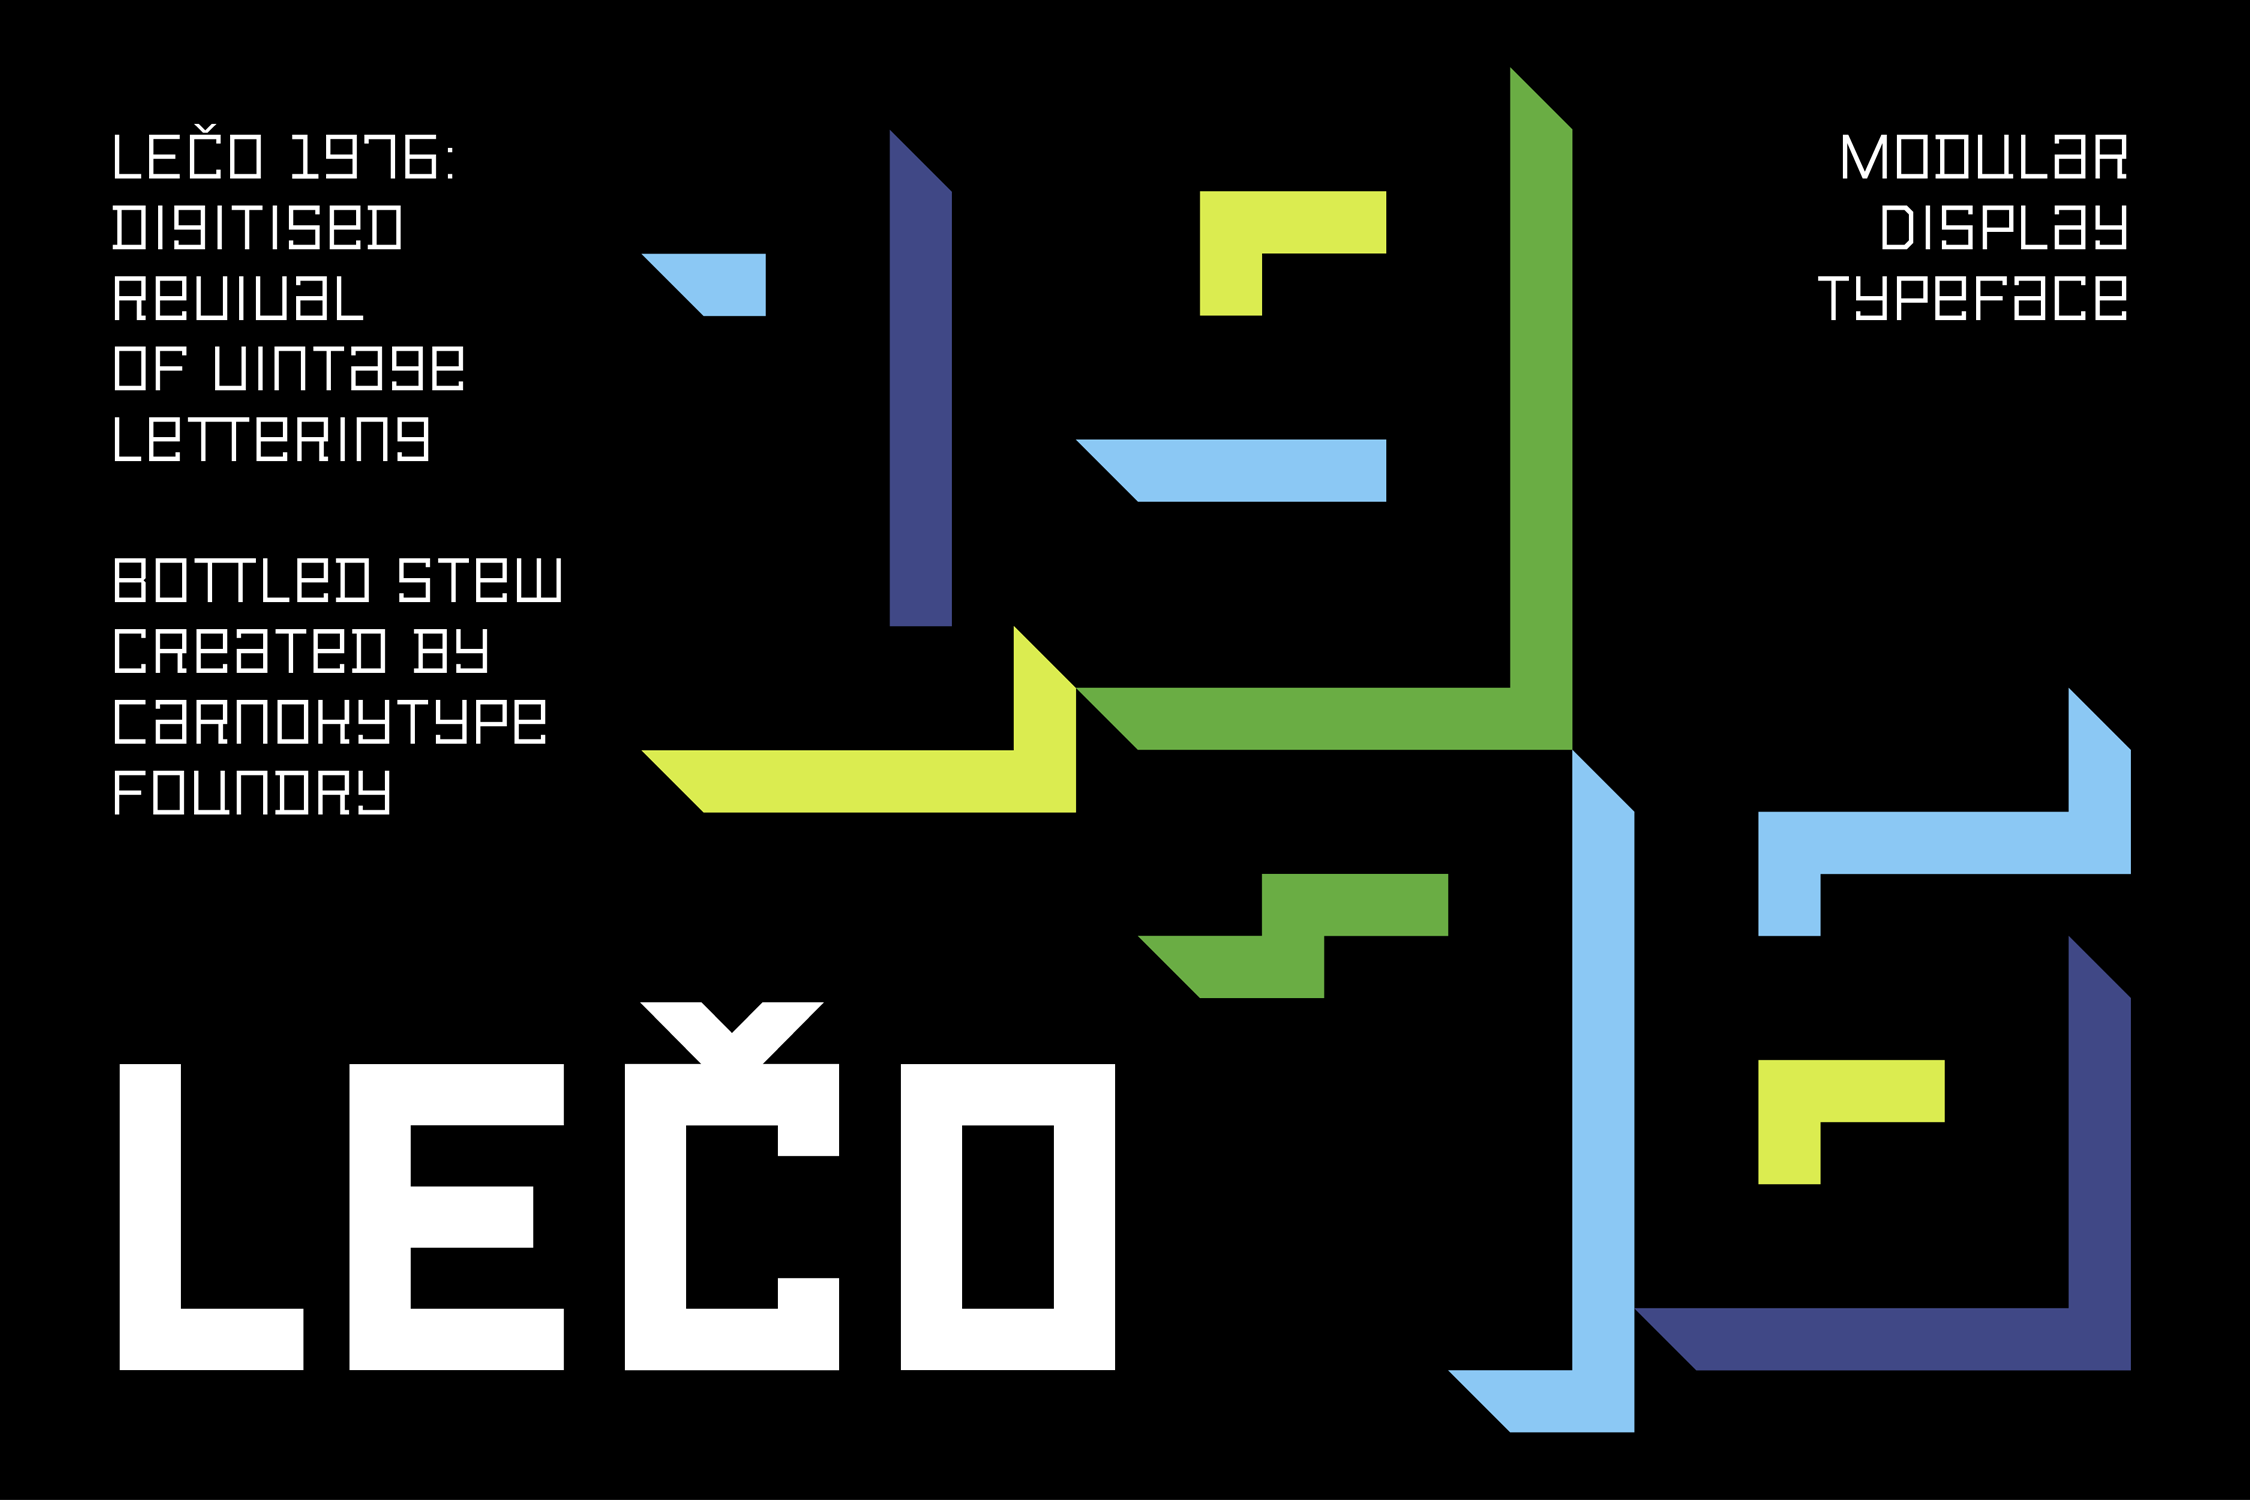 LECO1976-01.png